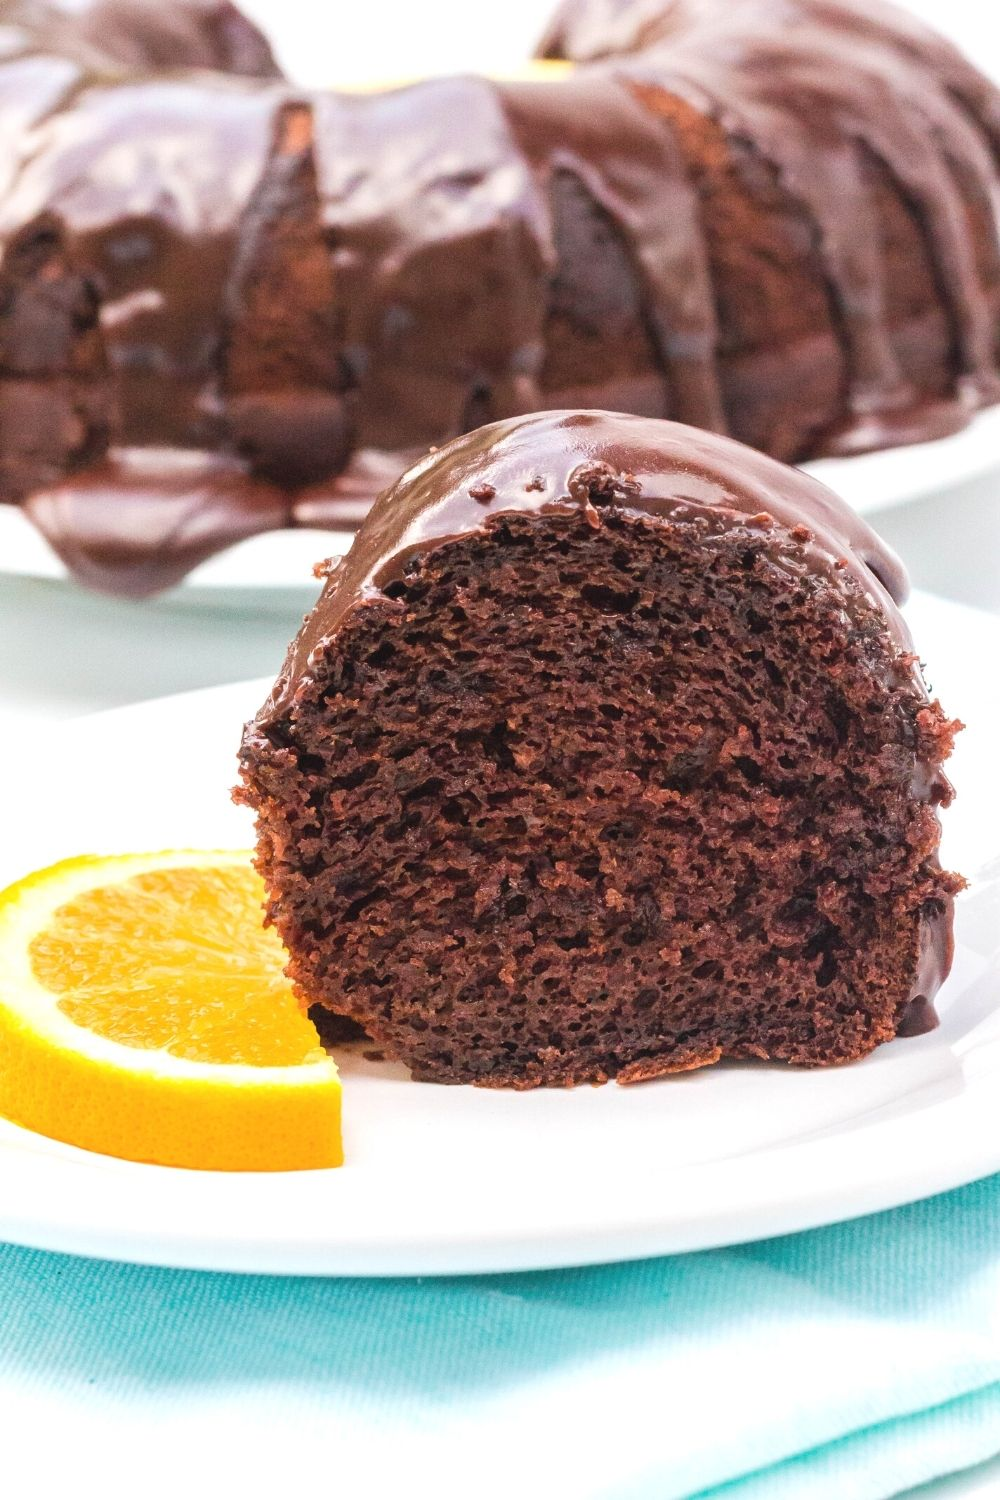 slice of chocolate orange bundt cake on a white plate with a garnish of sliced orange, in front of the remaining whole bundt cake